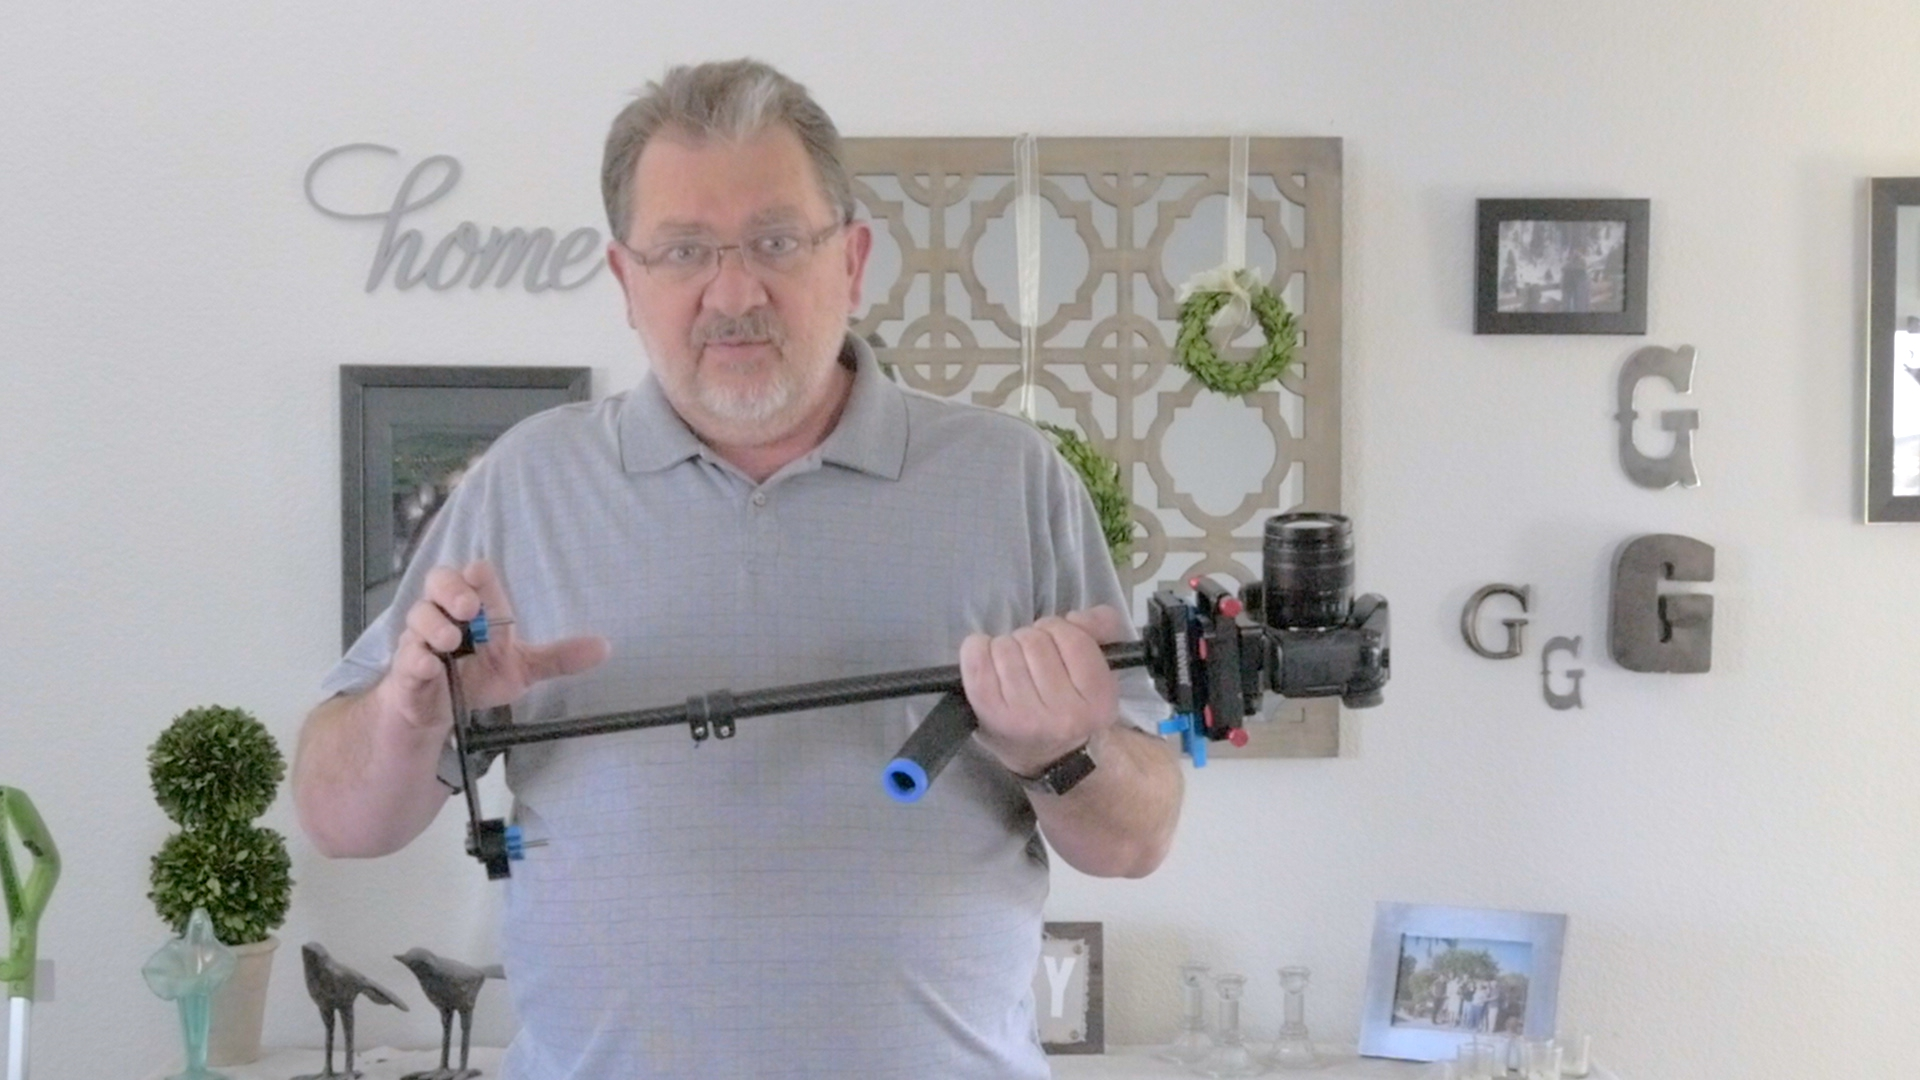 Using a Glidecam – Balancing a Glidecam